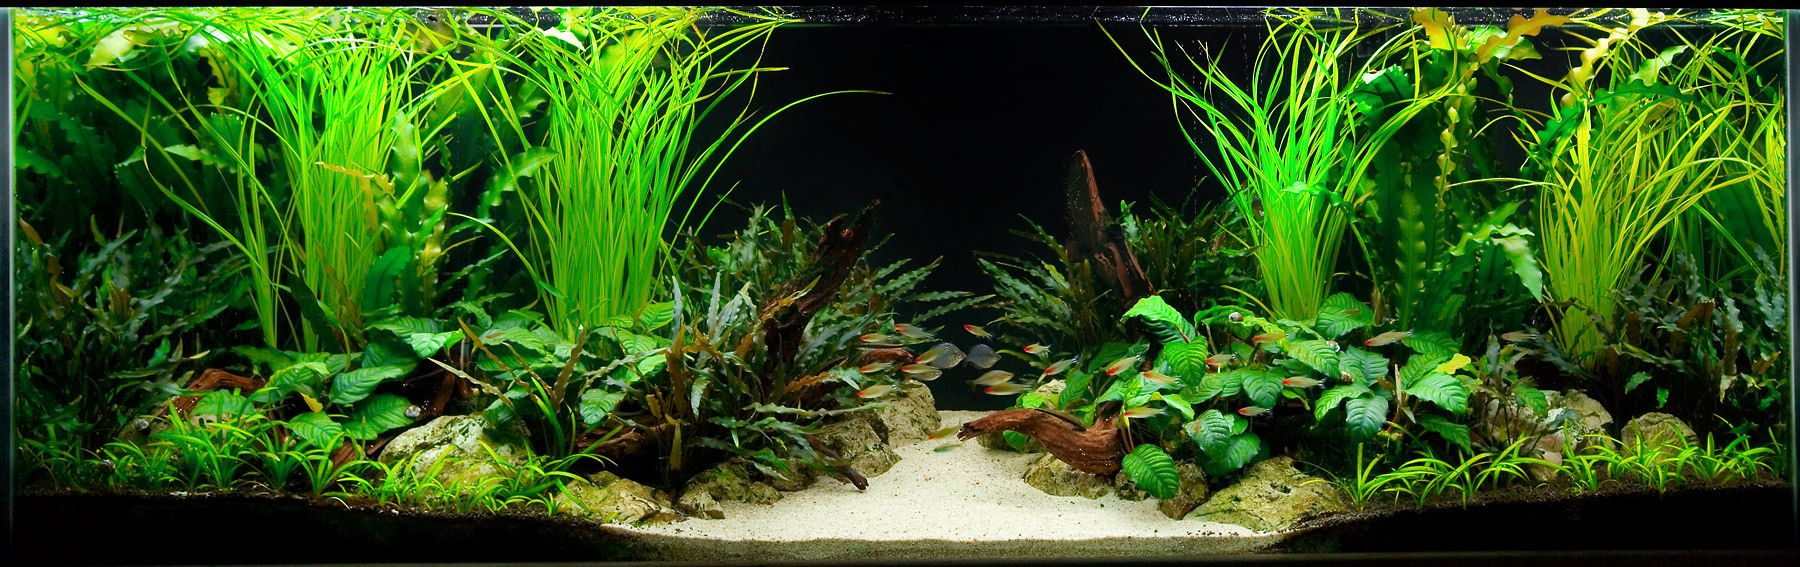 Freshwater Aquarium Design Ideas freshwater aquarium design ideas for betta fish tanks aquarium sculpture series Aquarium Design Group A Two Sided Live Planted Aquarium Layout